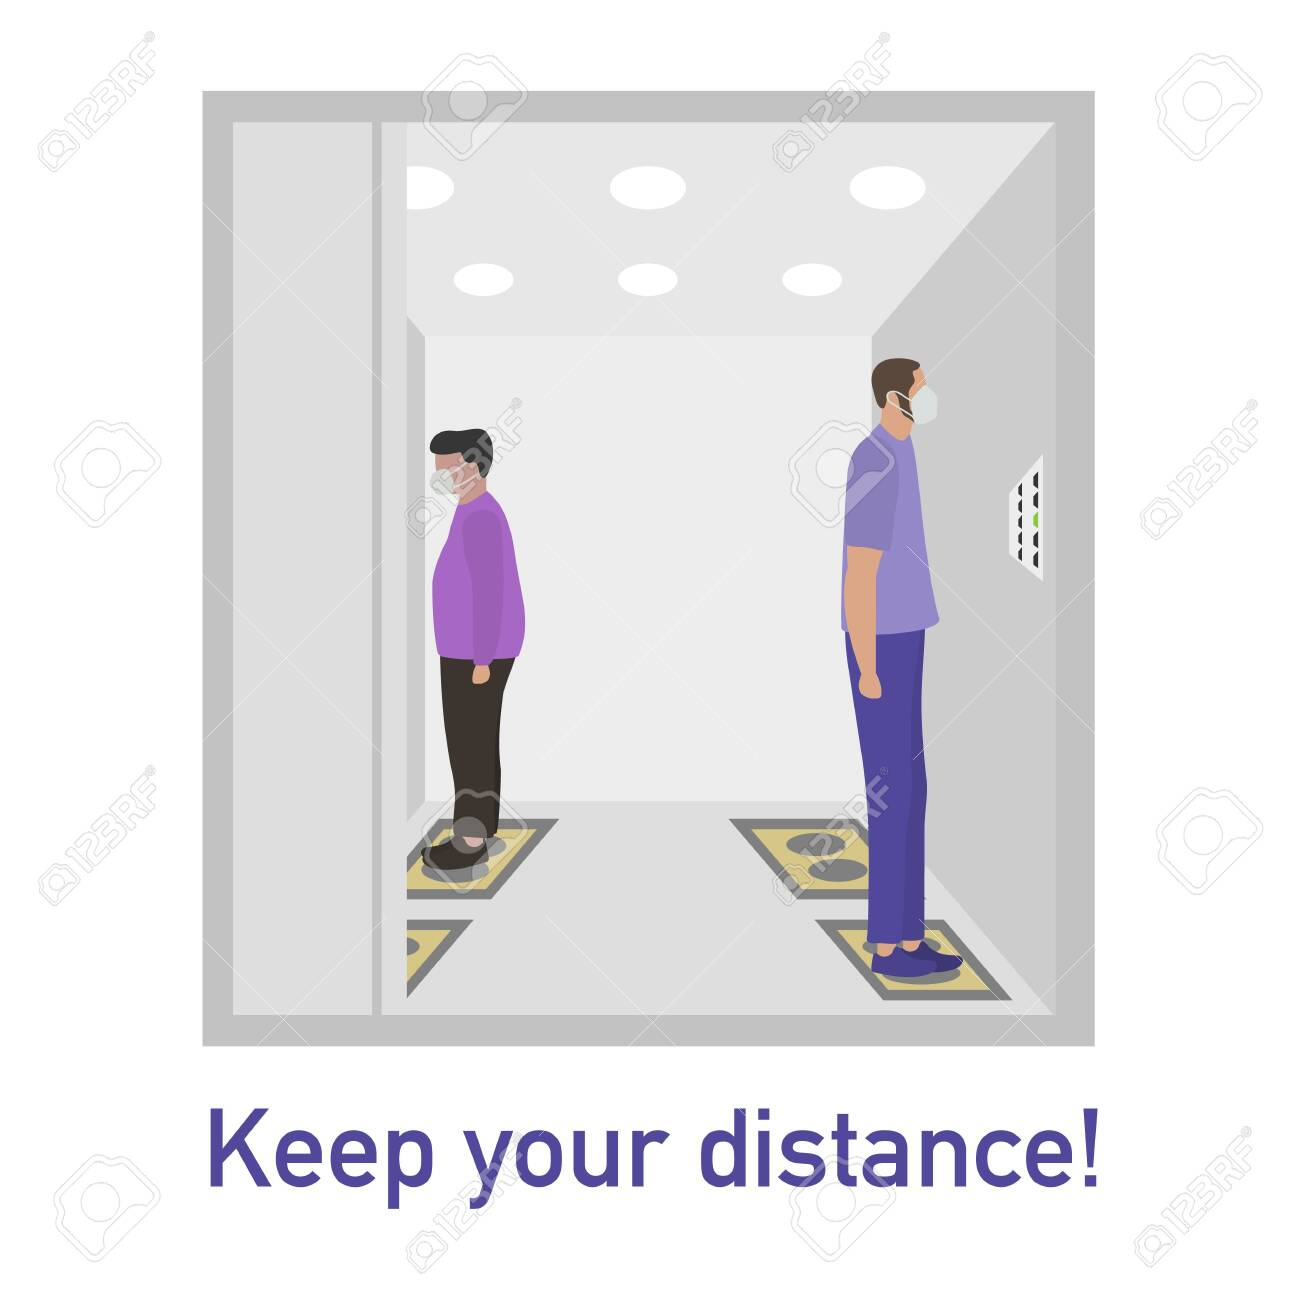 Vector illustration Keep distance. Social distancing. coronavirus COVID-19 Quarantine. Pandemic virus Reducing risk of infection, disease prevention measures. People in masks in elevator - 142844681